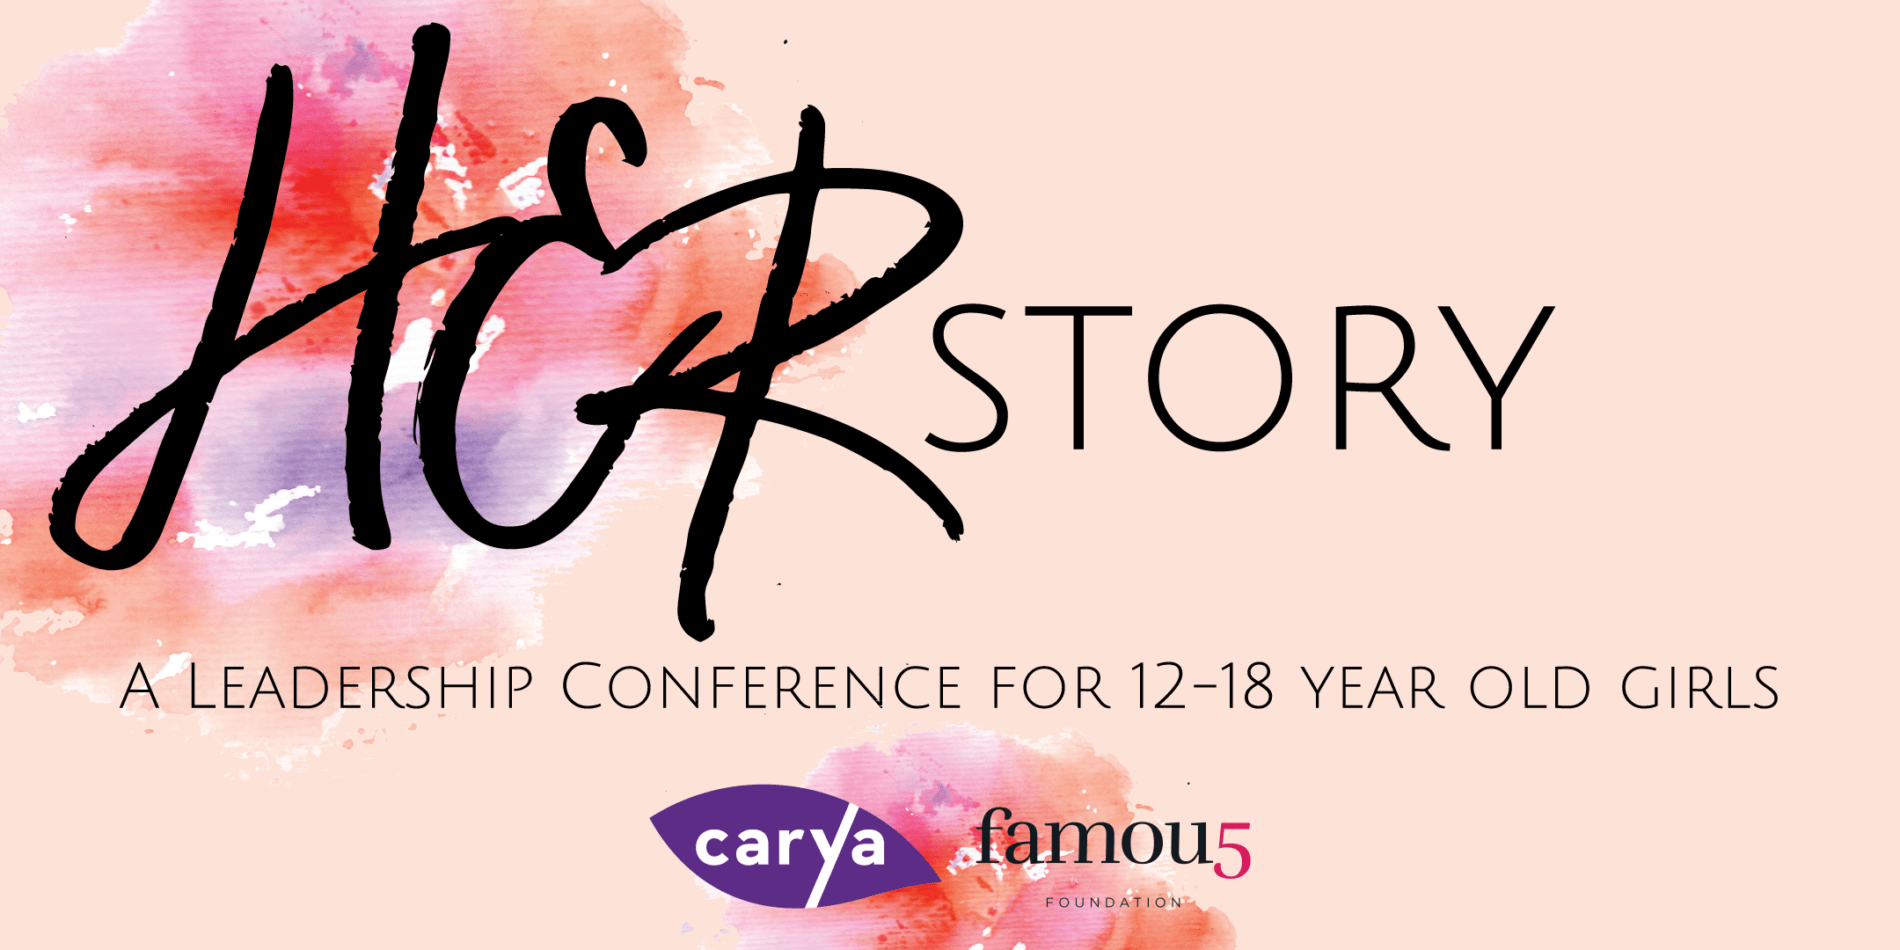 HERstory leadership conference